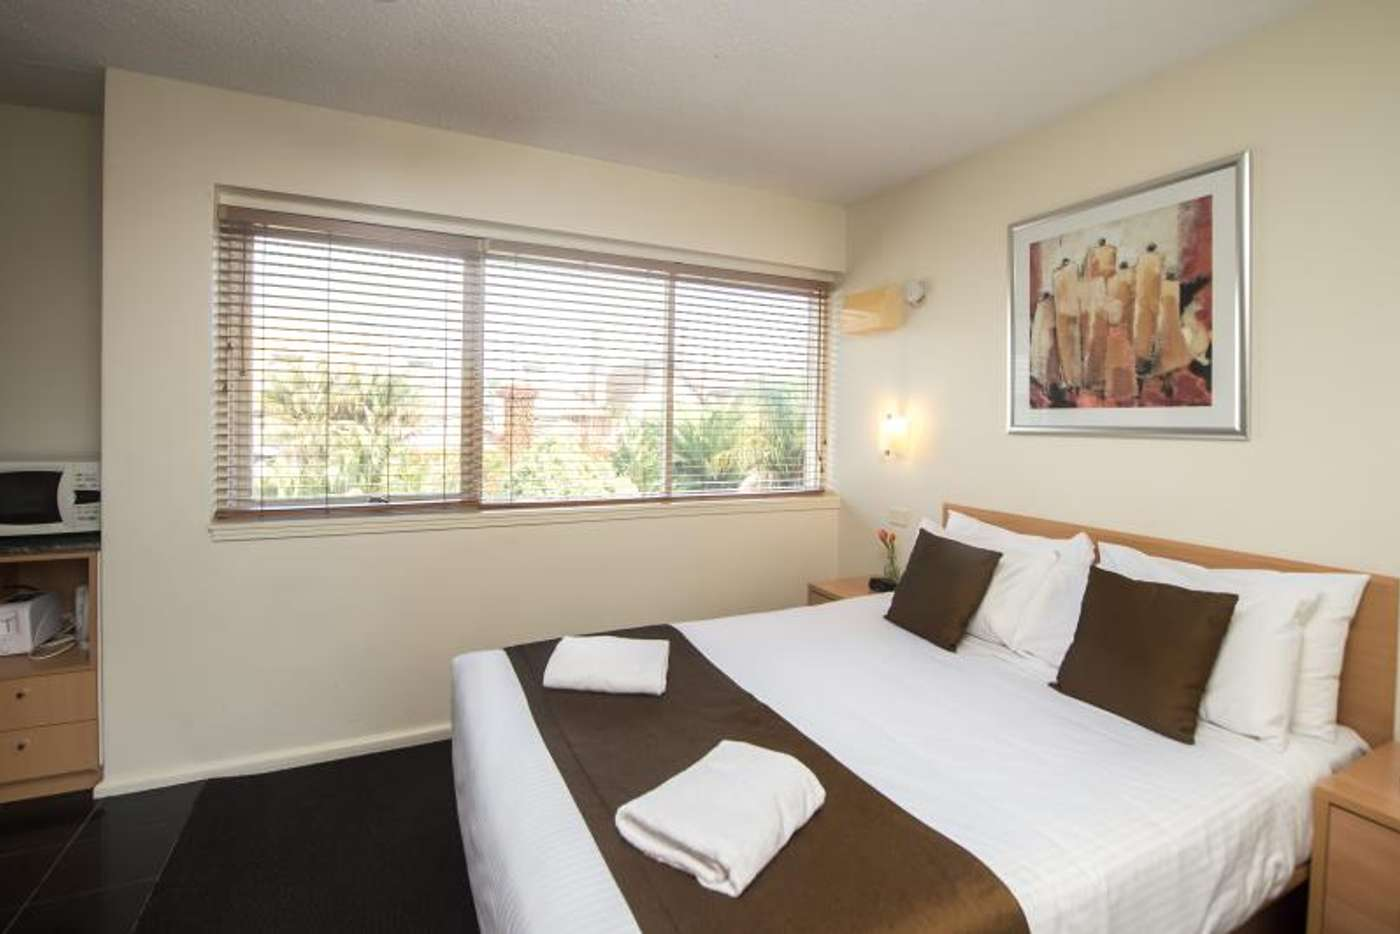 Main view of Homely studio listing, 703/65 Acland Street, St Kilda VIC 3182